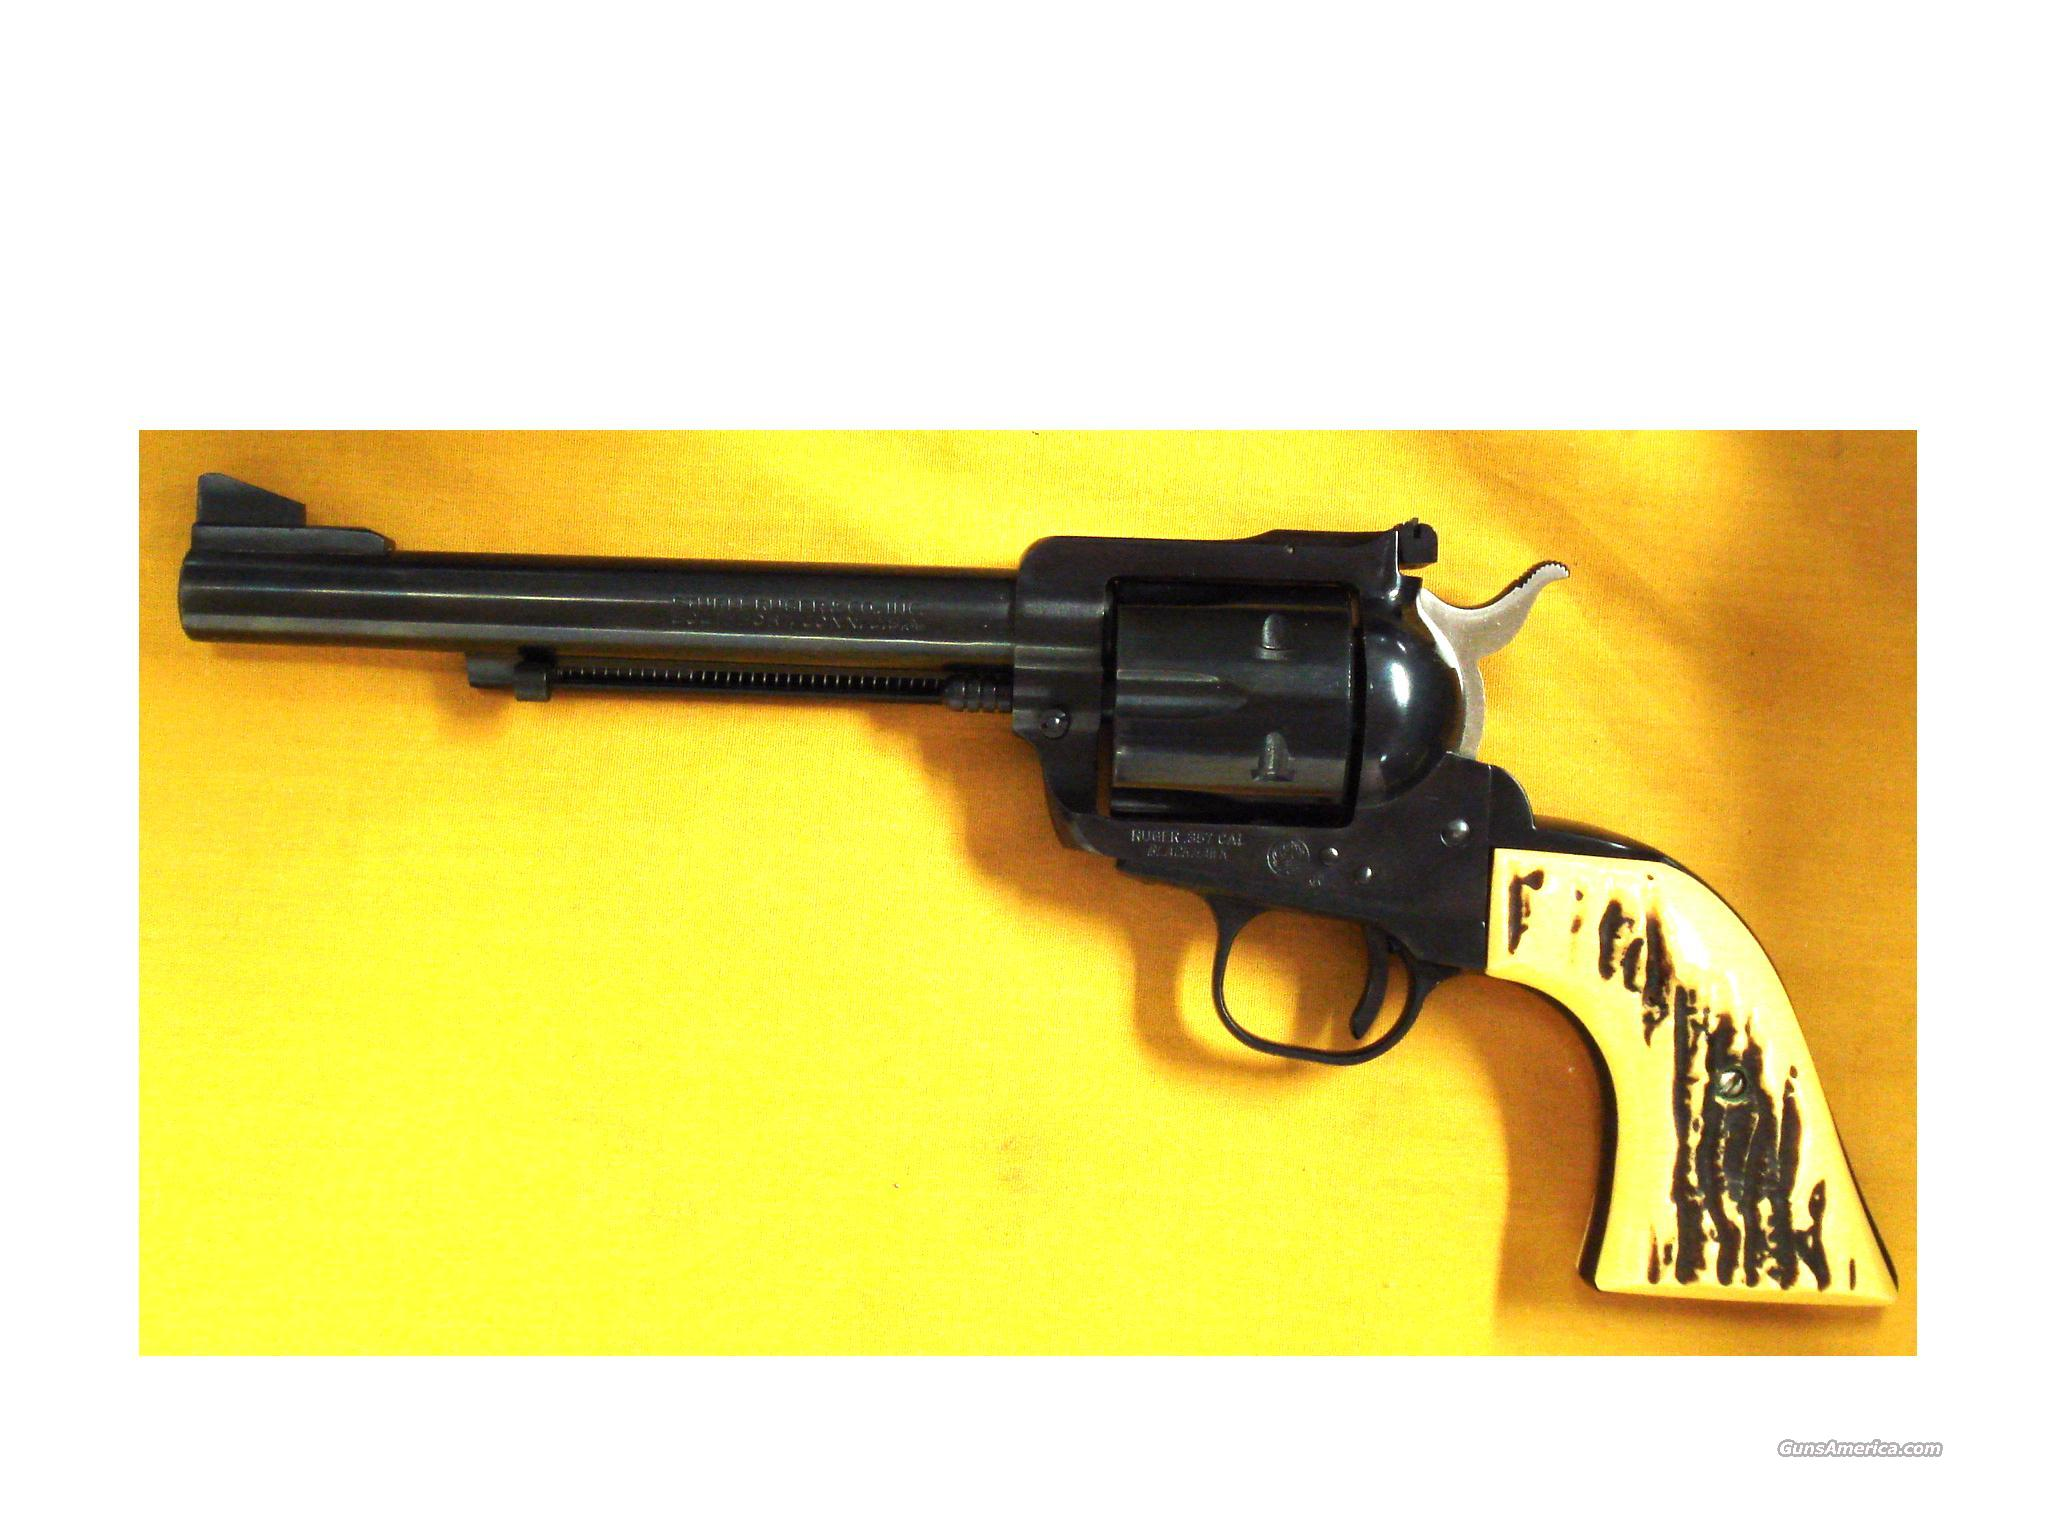 "RUGER BLACKHAWK .357 6 1/2"" BBL  Guns > Pistols > Ruger Single Action Revolvers > Blackhawk Type"